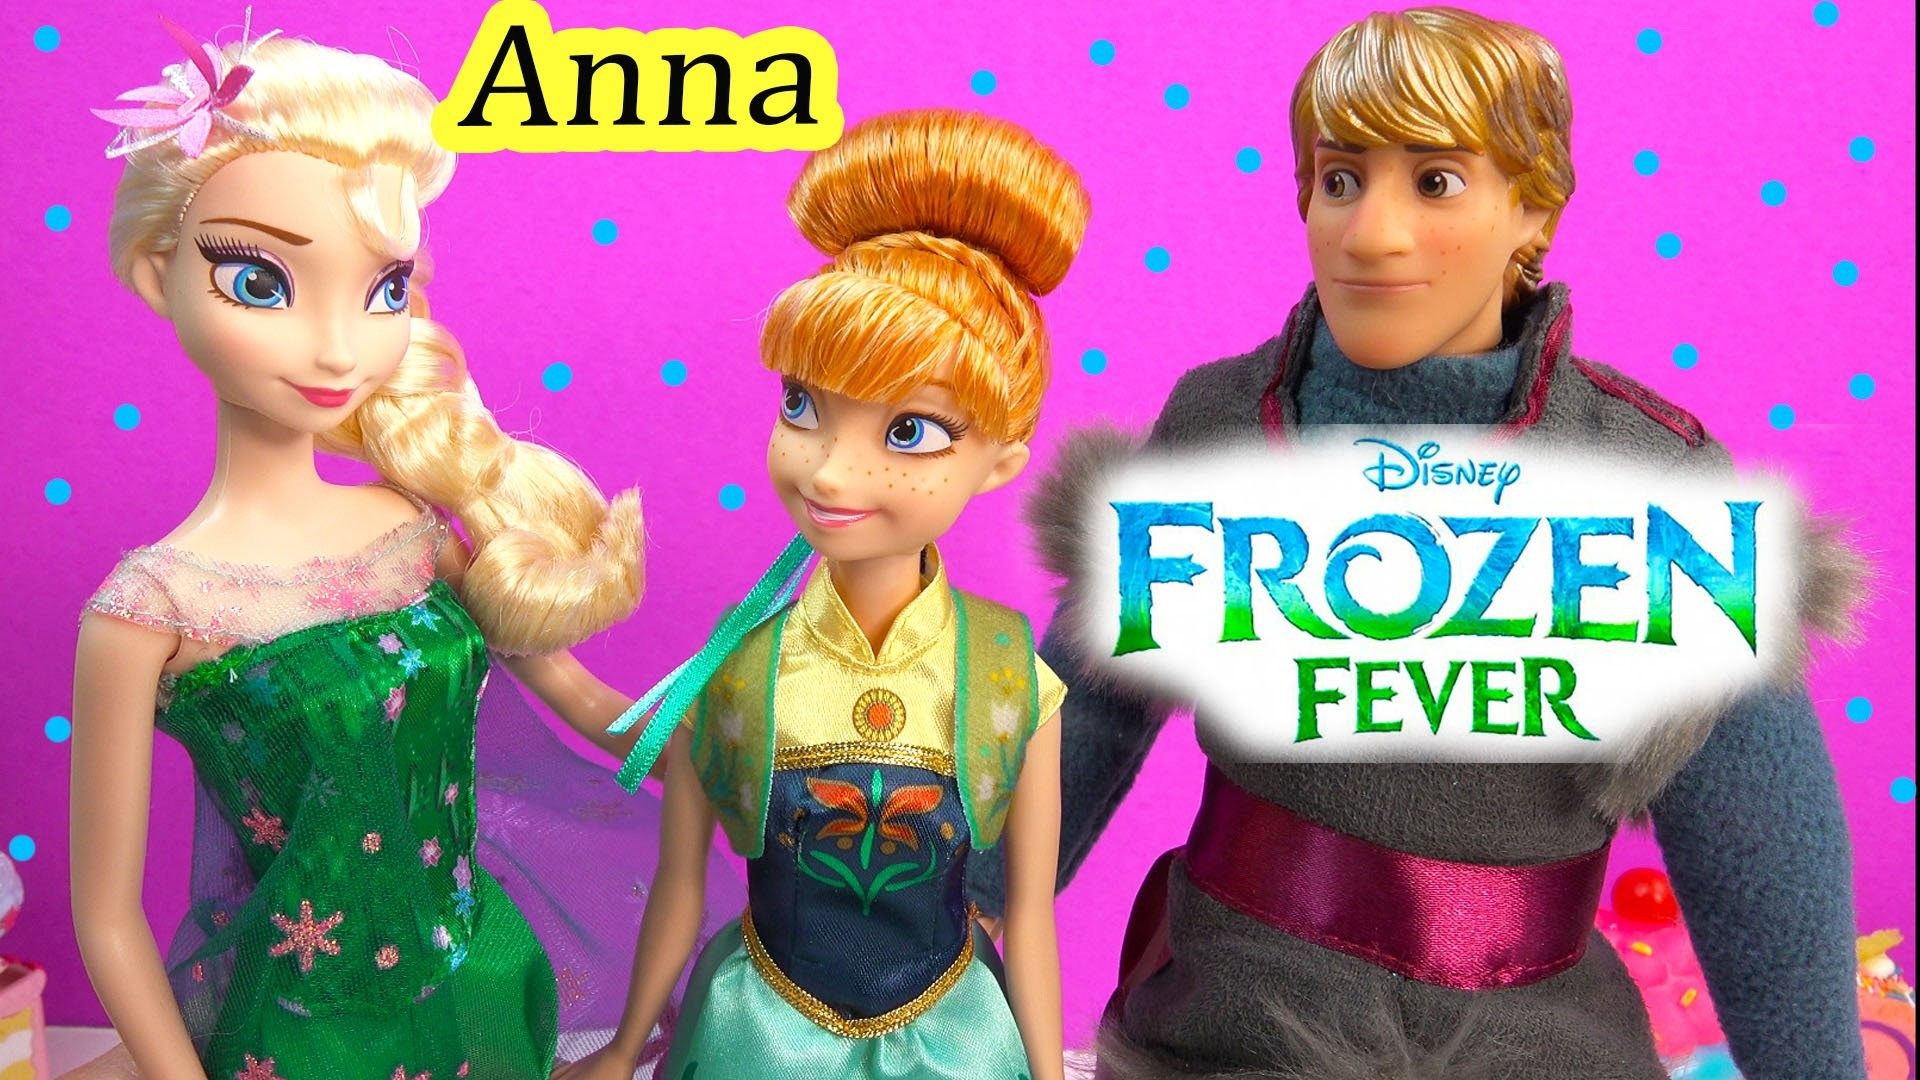 1920x1080 FROZEN FEVER Princess Anna Queen Elsa Birthday Party Doll From New Disney  Movie Unboxing Review - YouTube